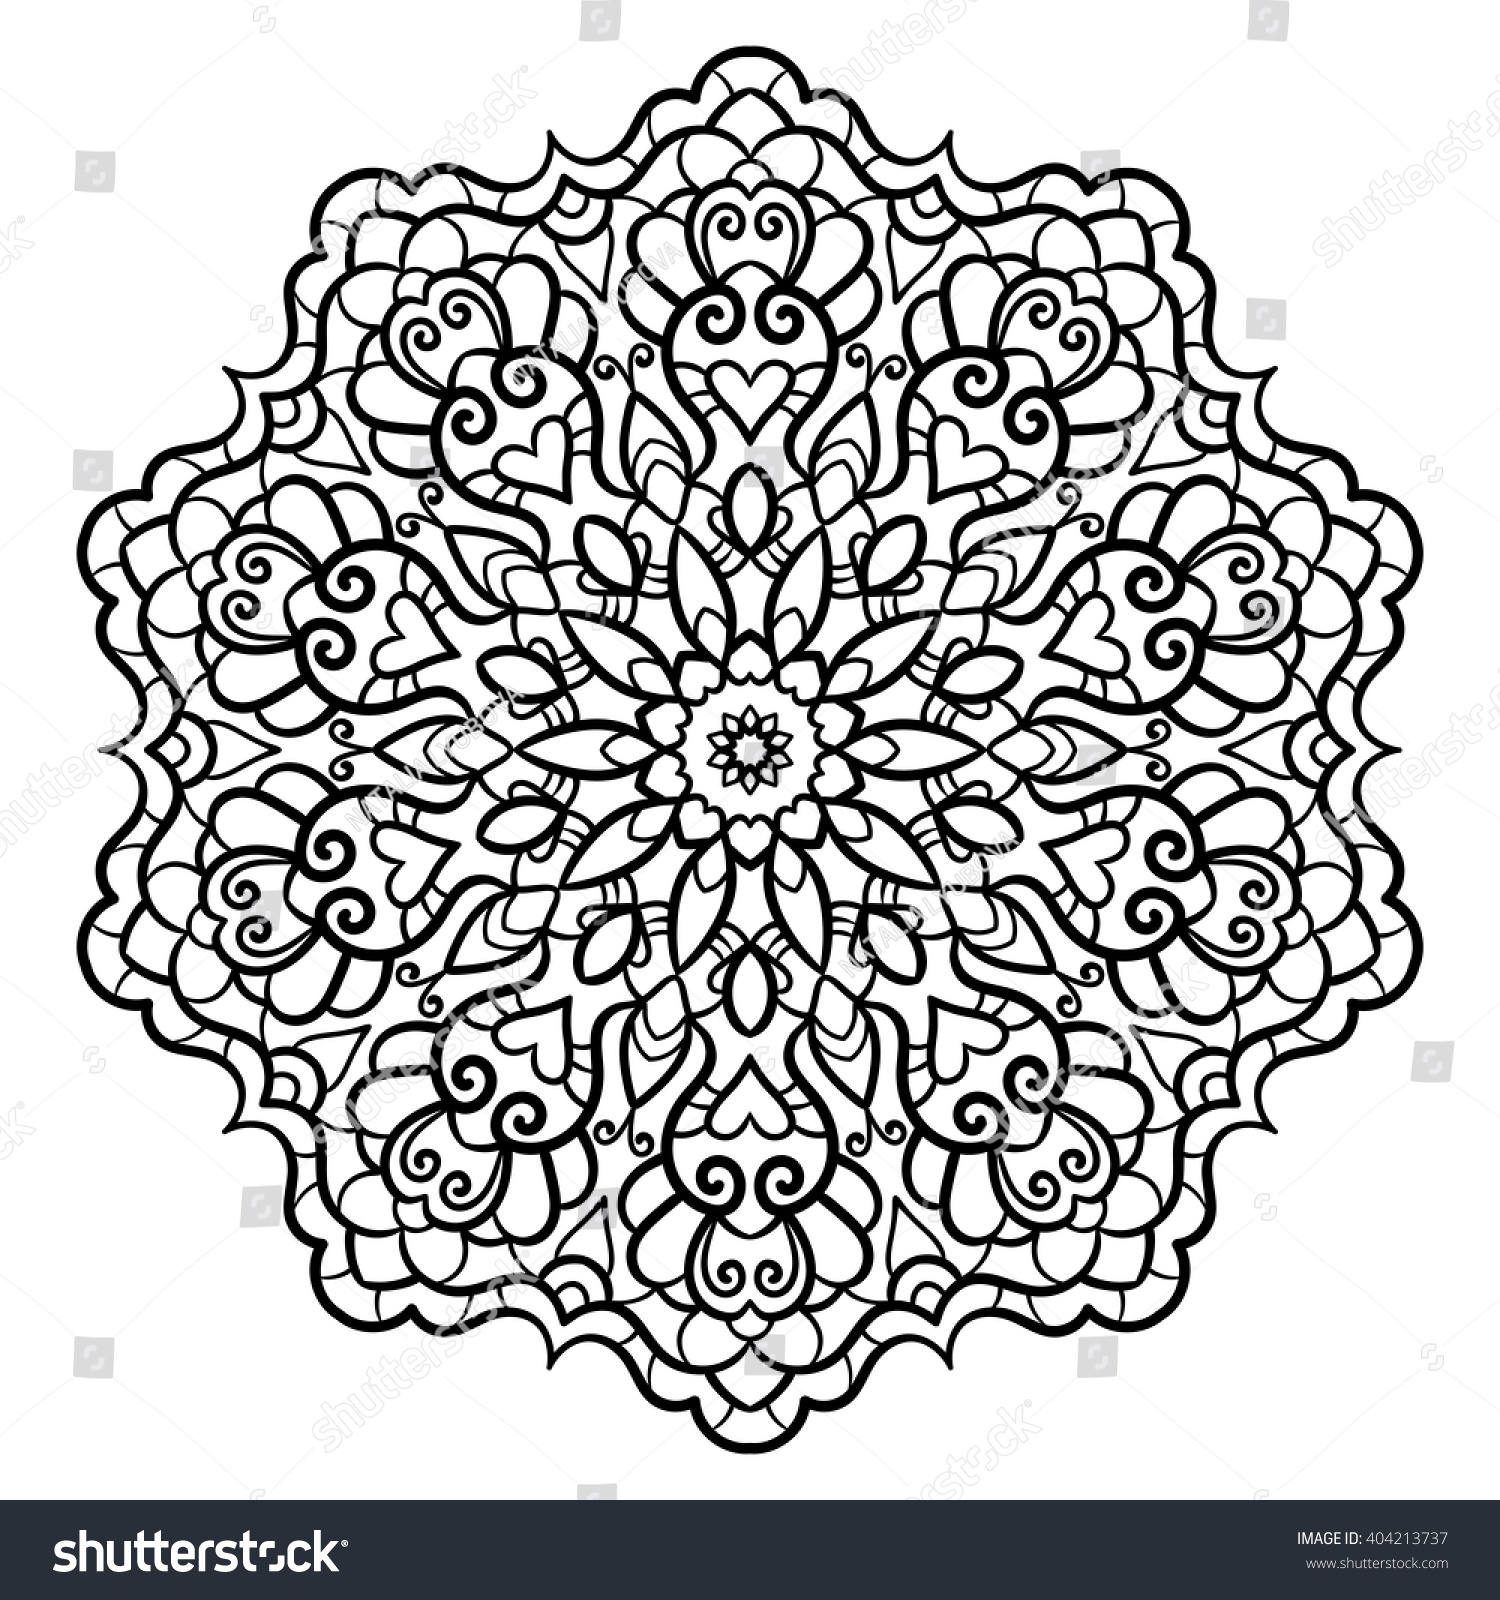 circle abstract coloring pages - photo#31